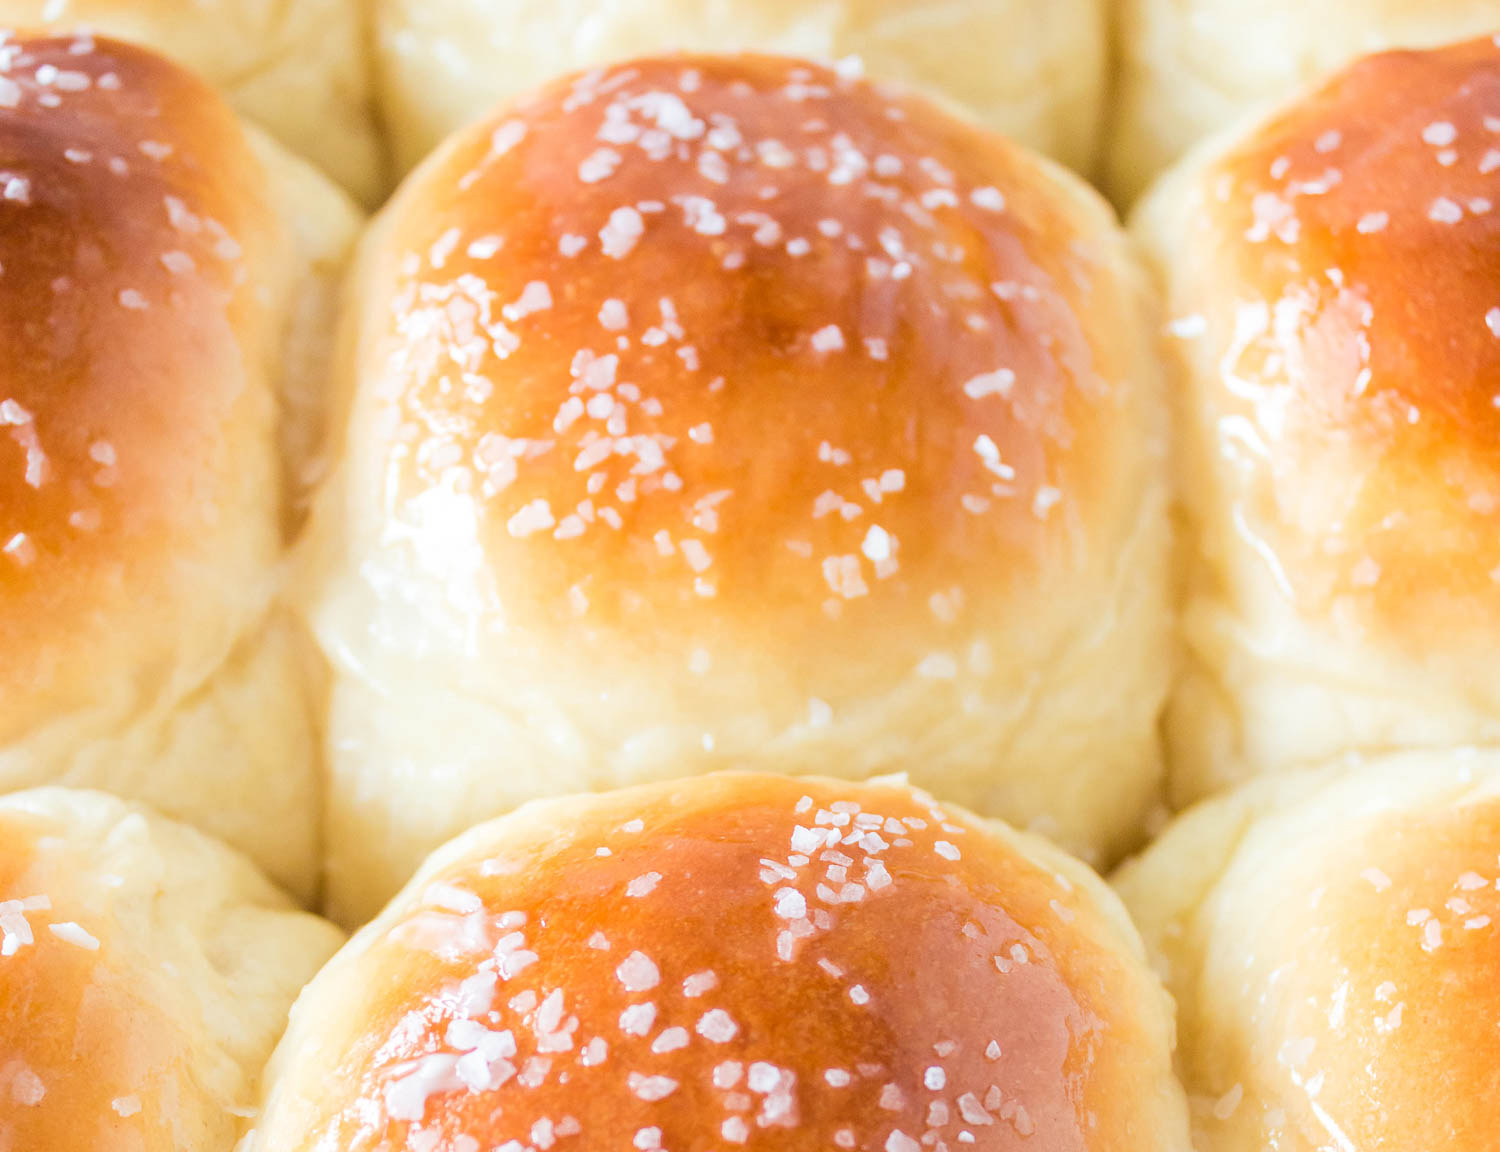 Rolls with butter and salt on them.